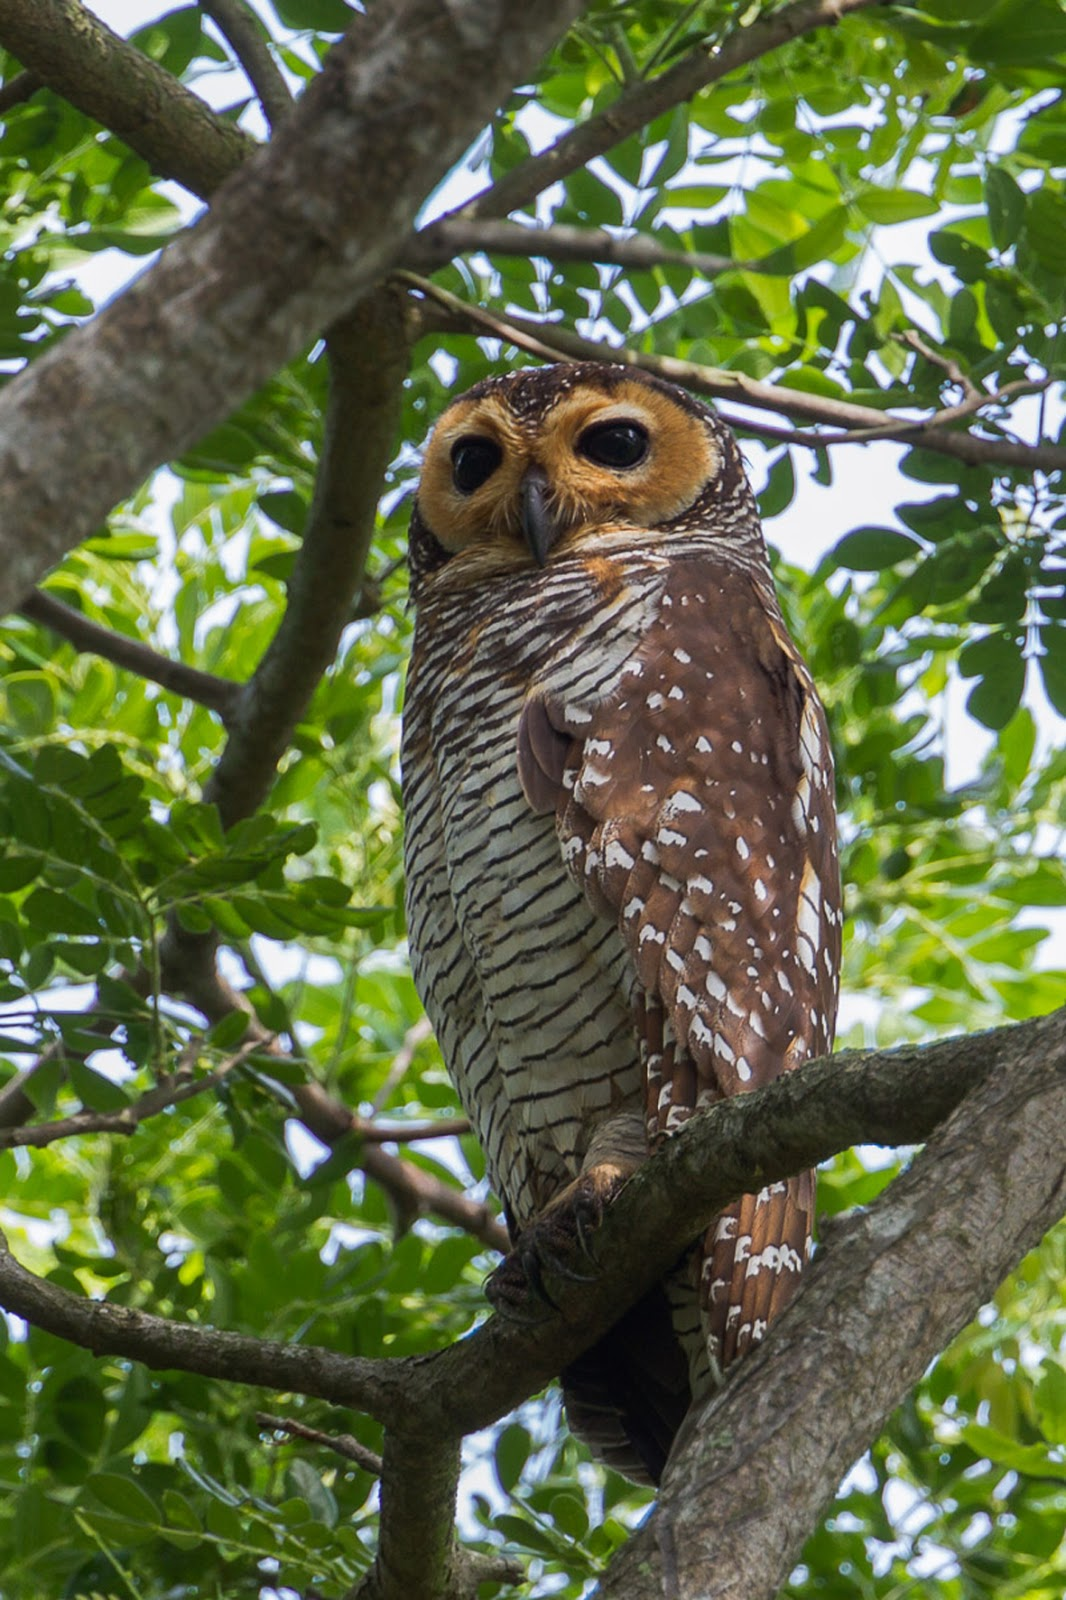 Spotted wood owl, which are nationally critically endangered.